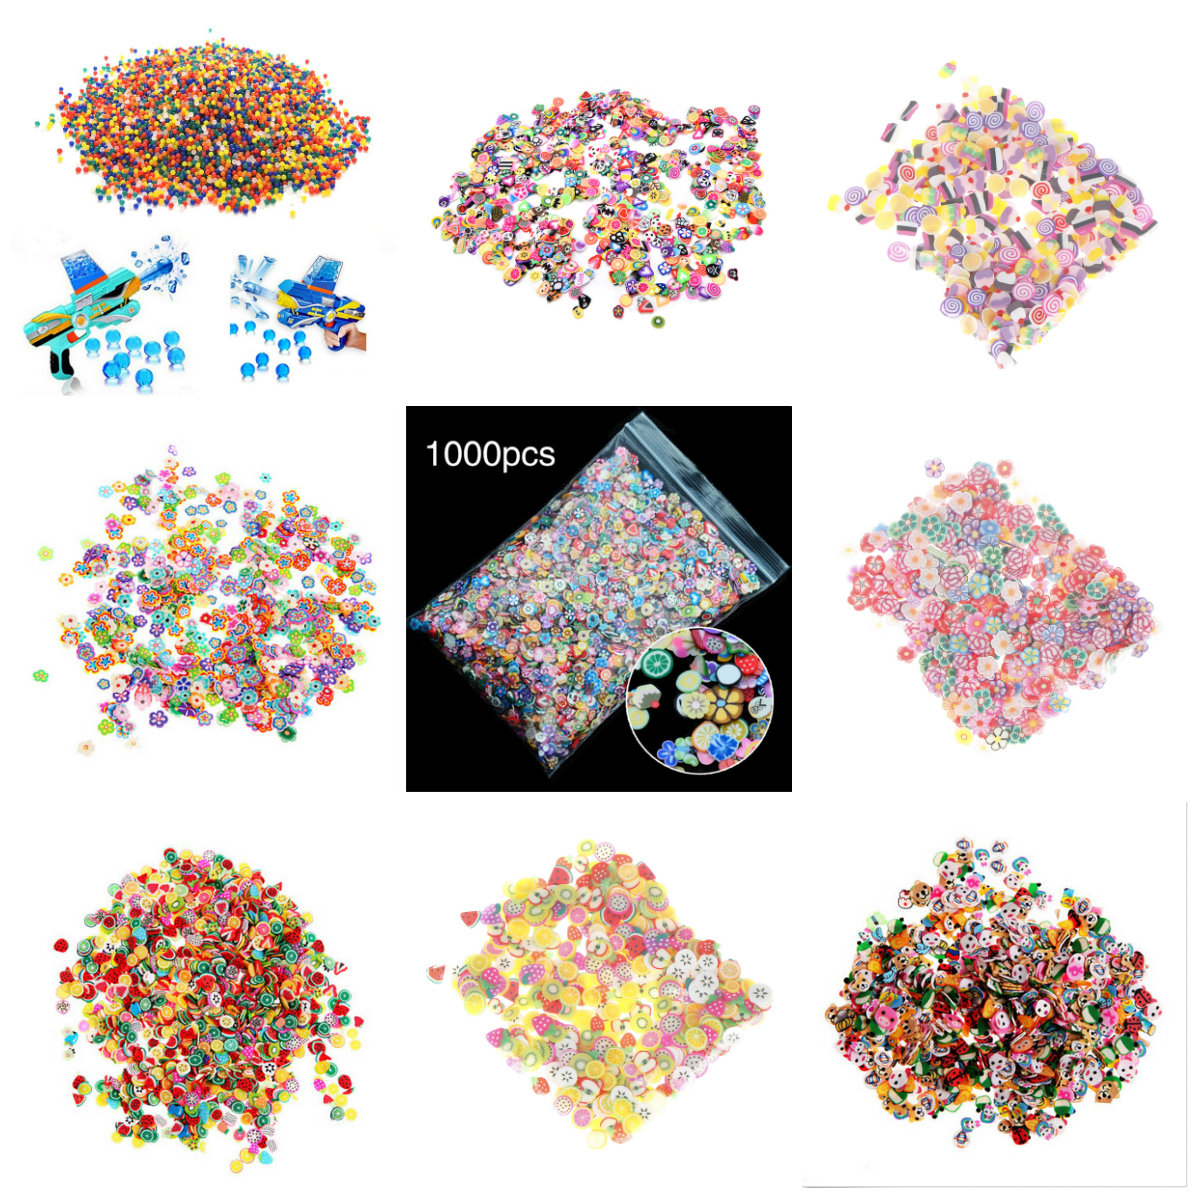 Modeling Clay 500/1000pcs Soft Pottery Fruit Slices Filler For Nails Art Tips Slime Fruit For Kids Diy Slime Accessories Supplies Decoration Fixing Prices According To Quality Of Products Learning & Education